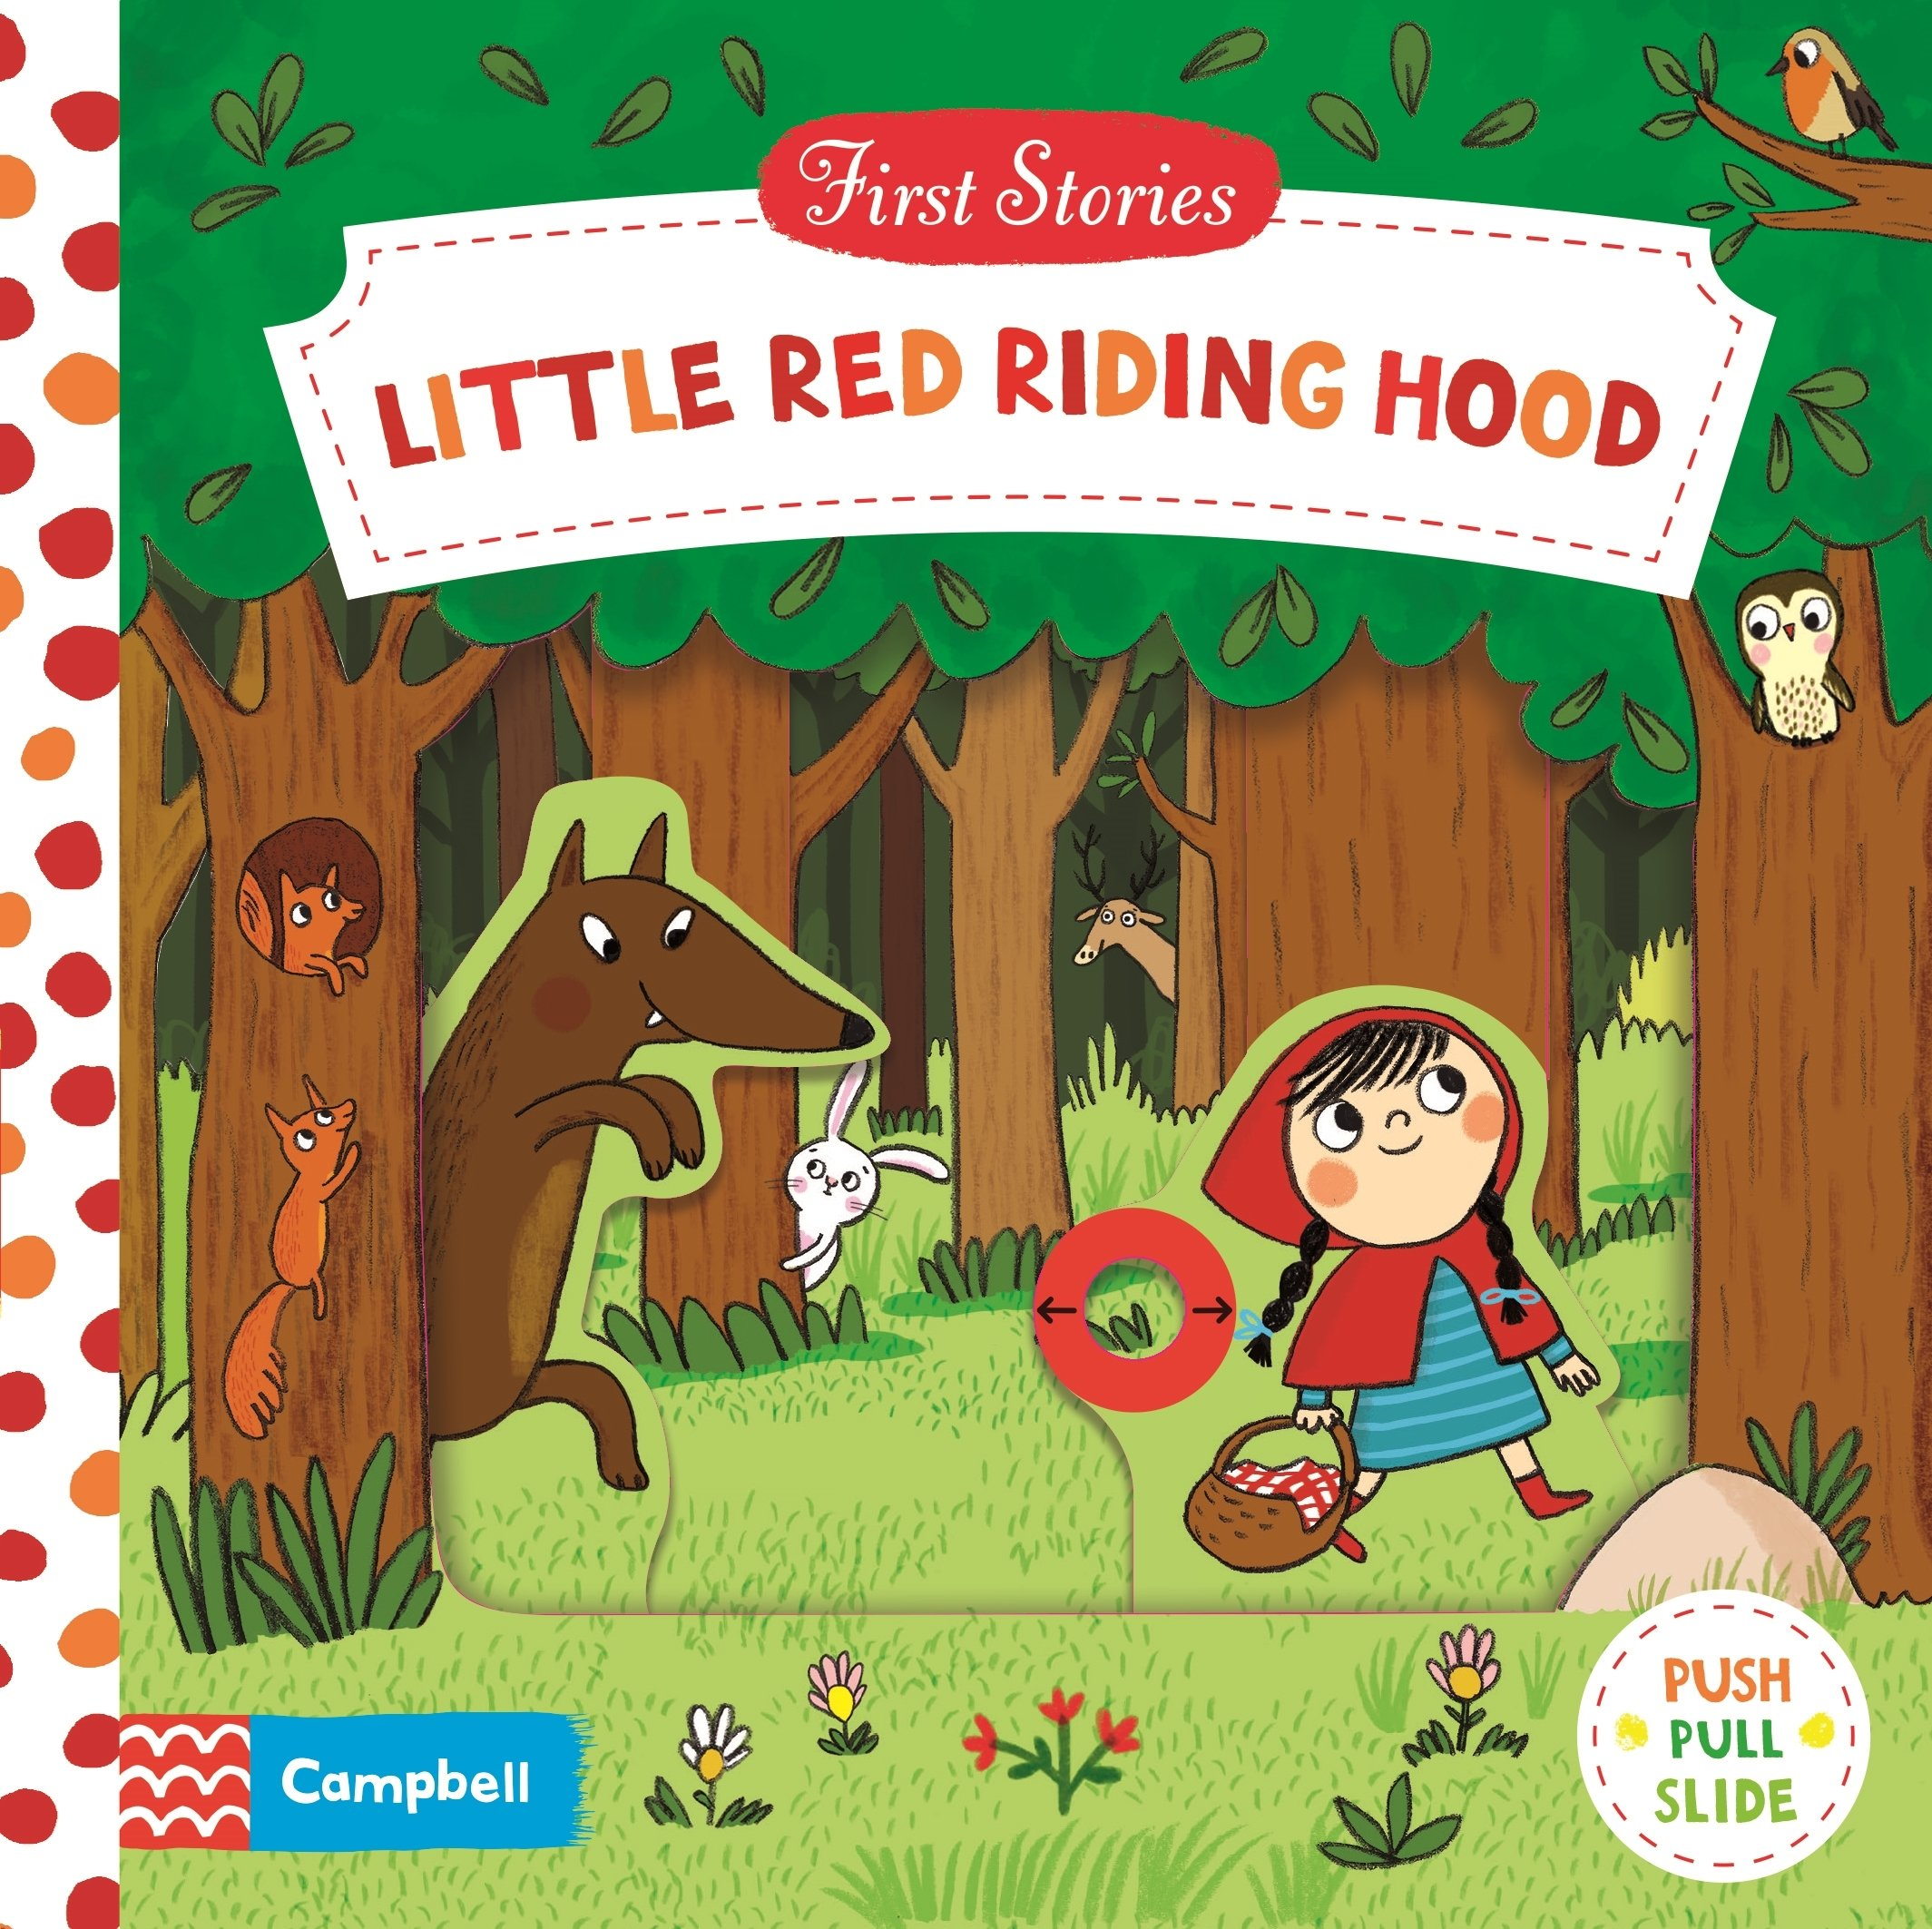 Little Red Riding Hood (First Stories): 9781509808977: Amazon.com: Books